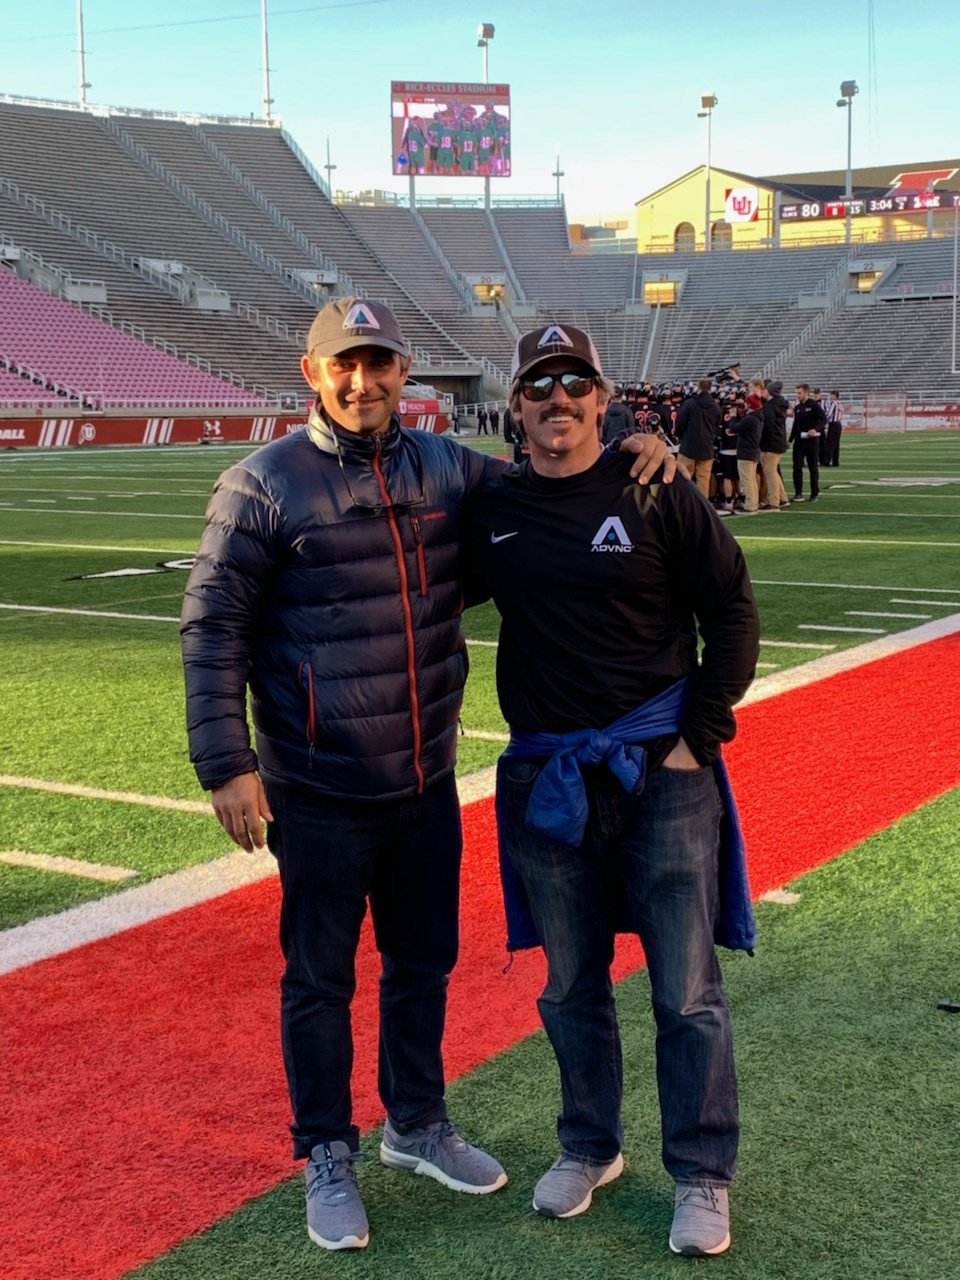 ADVNC Founder/CEO Chris Rotelli (left) & ADVNC Director Tyler Kreitz (right) on the field before Utah's First Division 1 lacrosse game